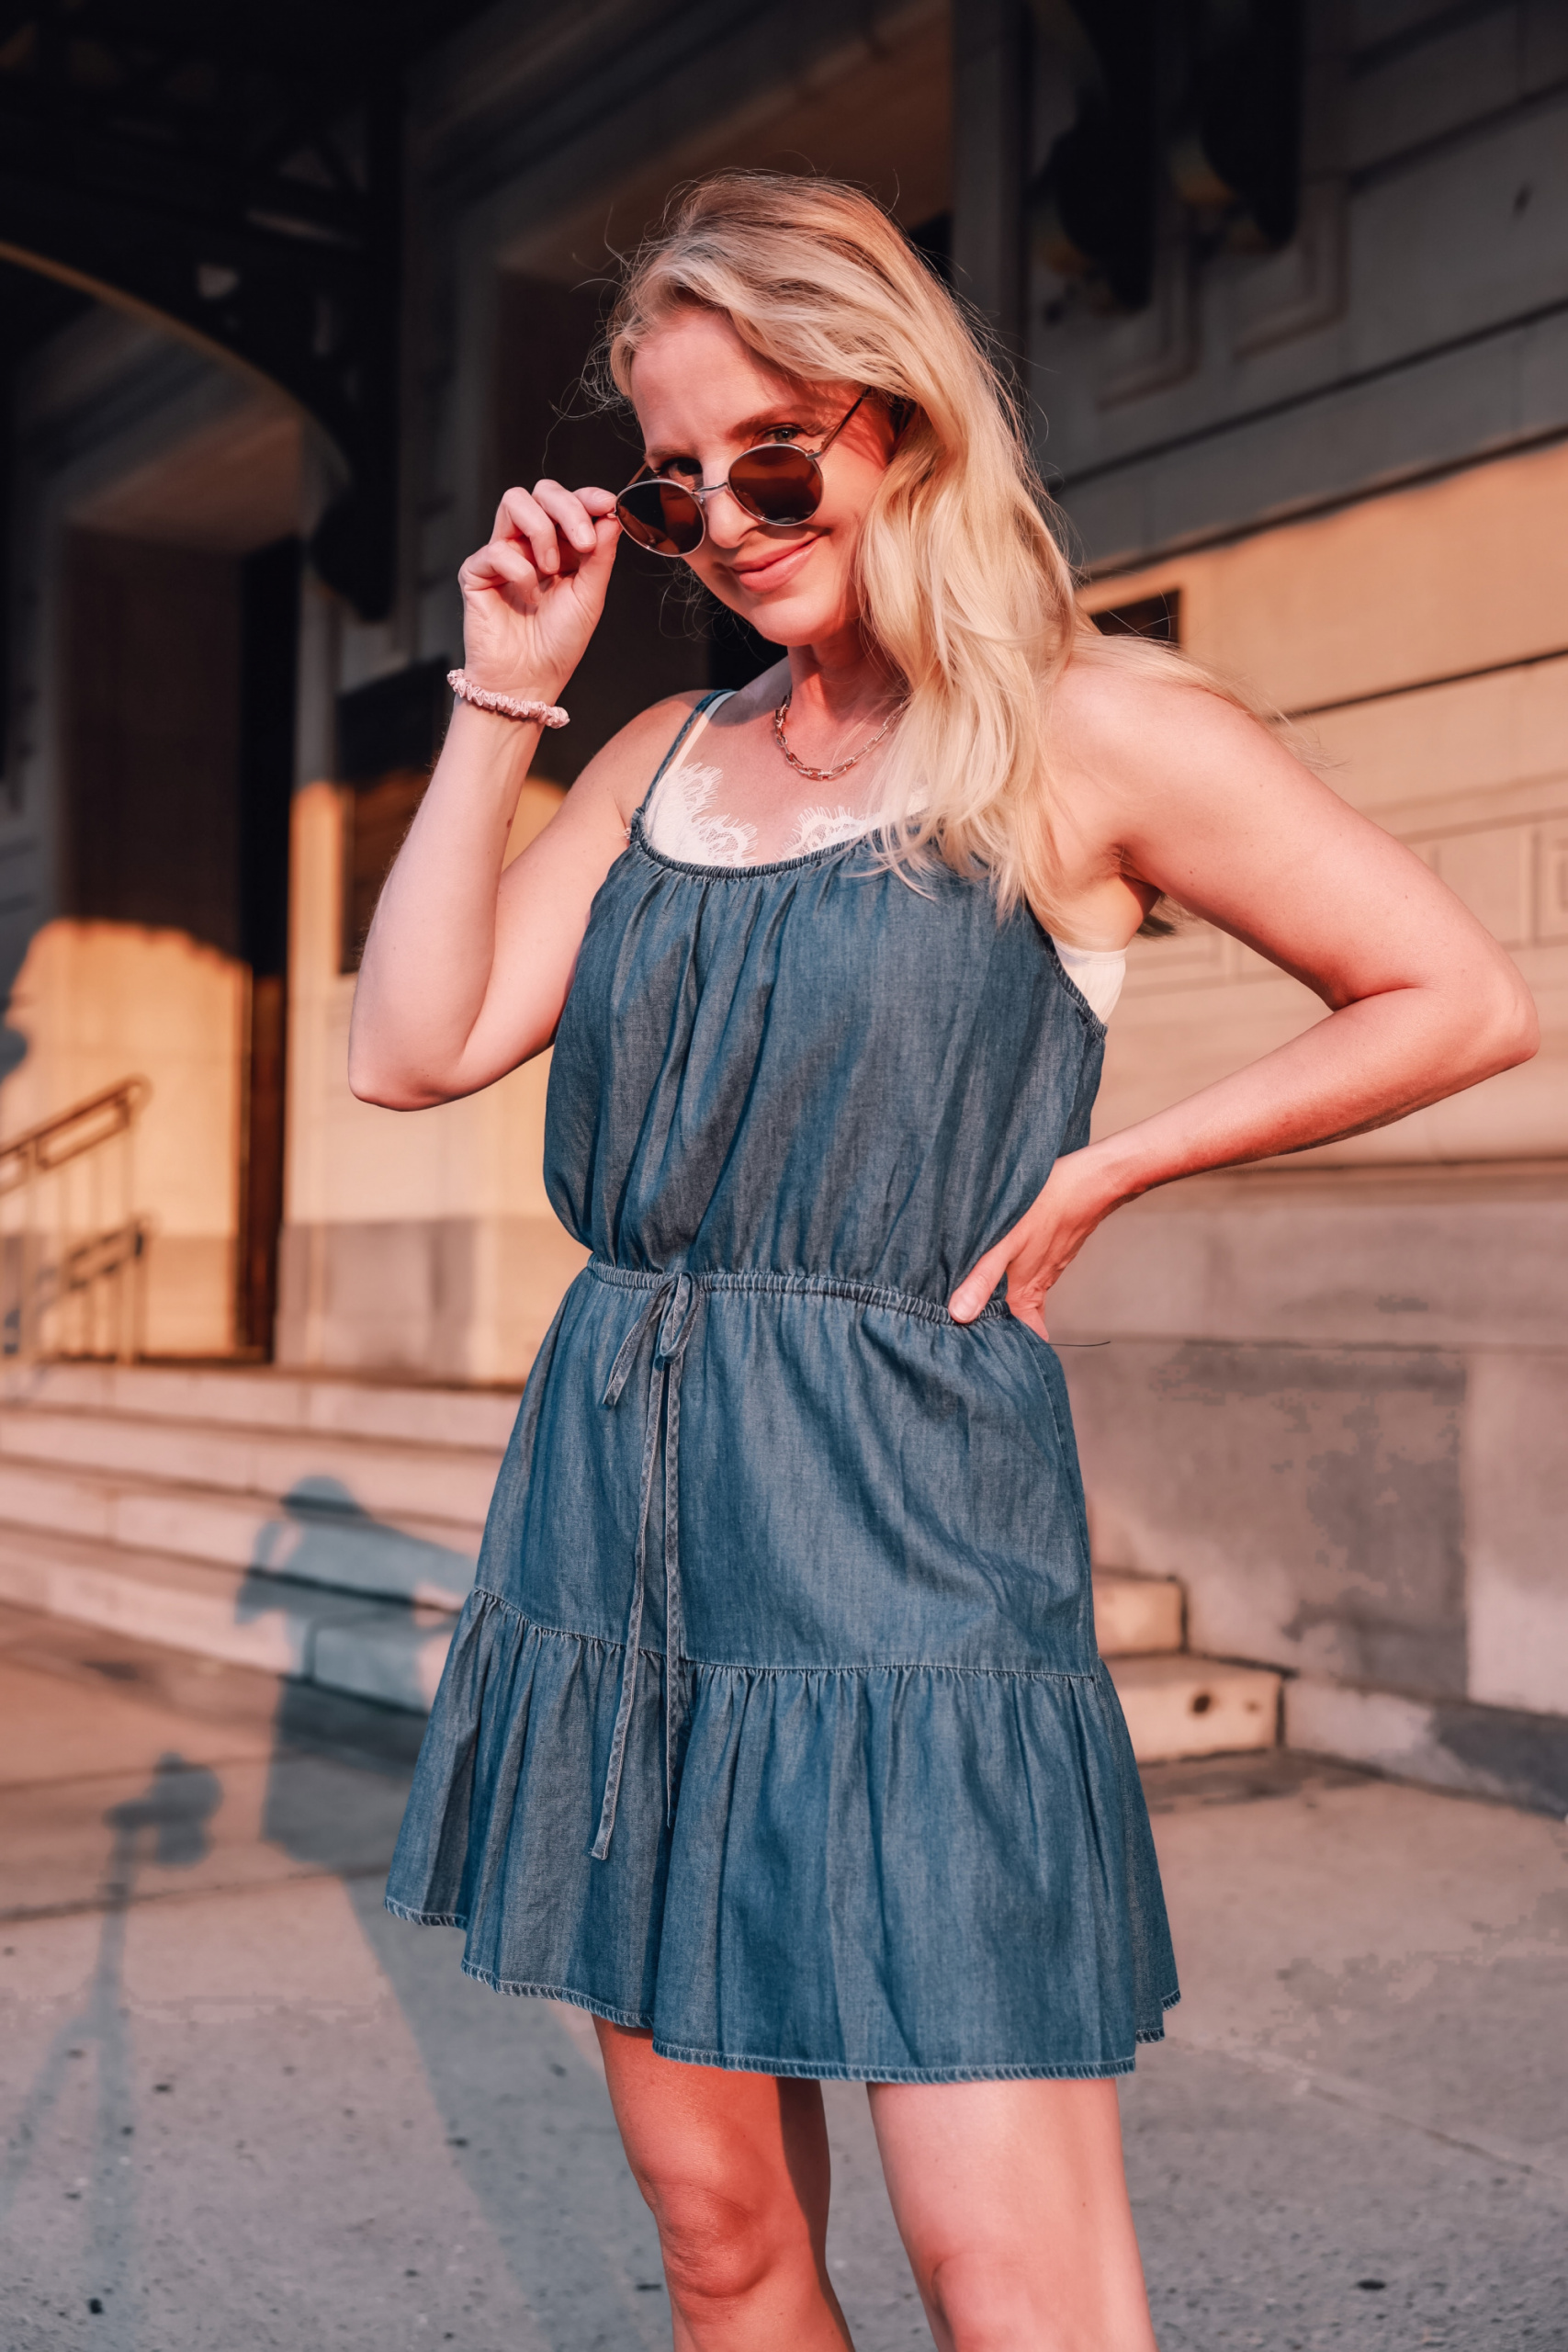 how to wear a romper, how to wear rompers, rompers over 40, three ways to wear a romper, express ruffled romper, express linen double breasted blazer, see by chloe wedges, express paperclip necklace, express jewelry, express sunglasses, affordable romper